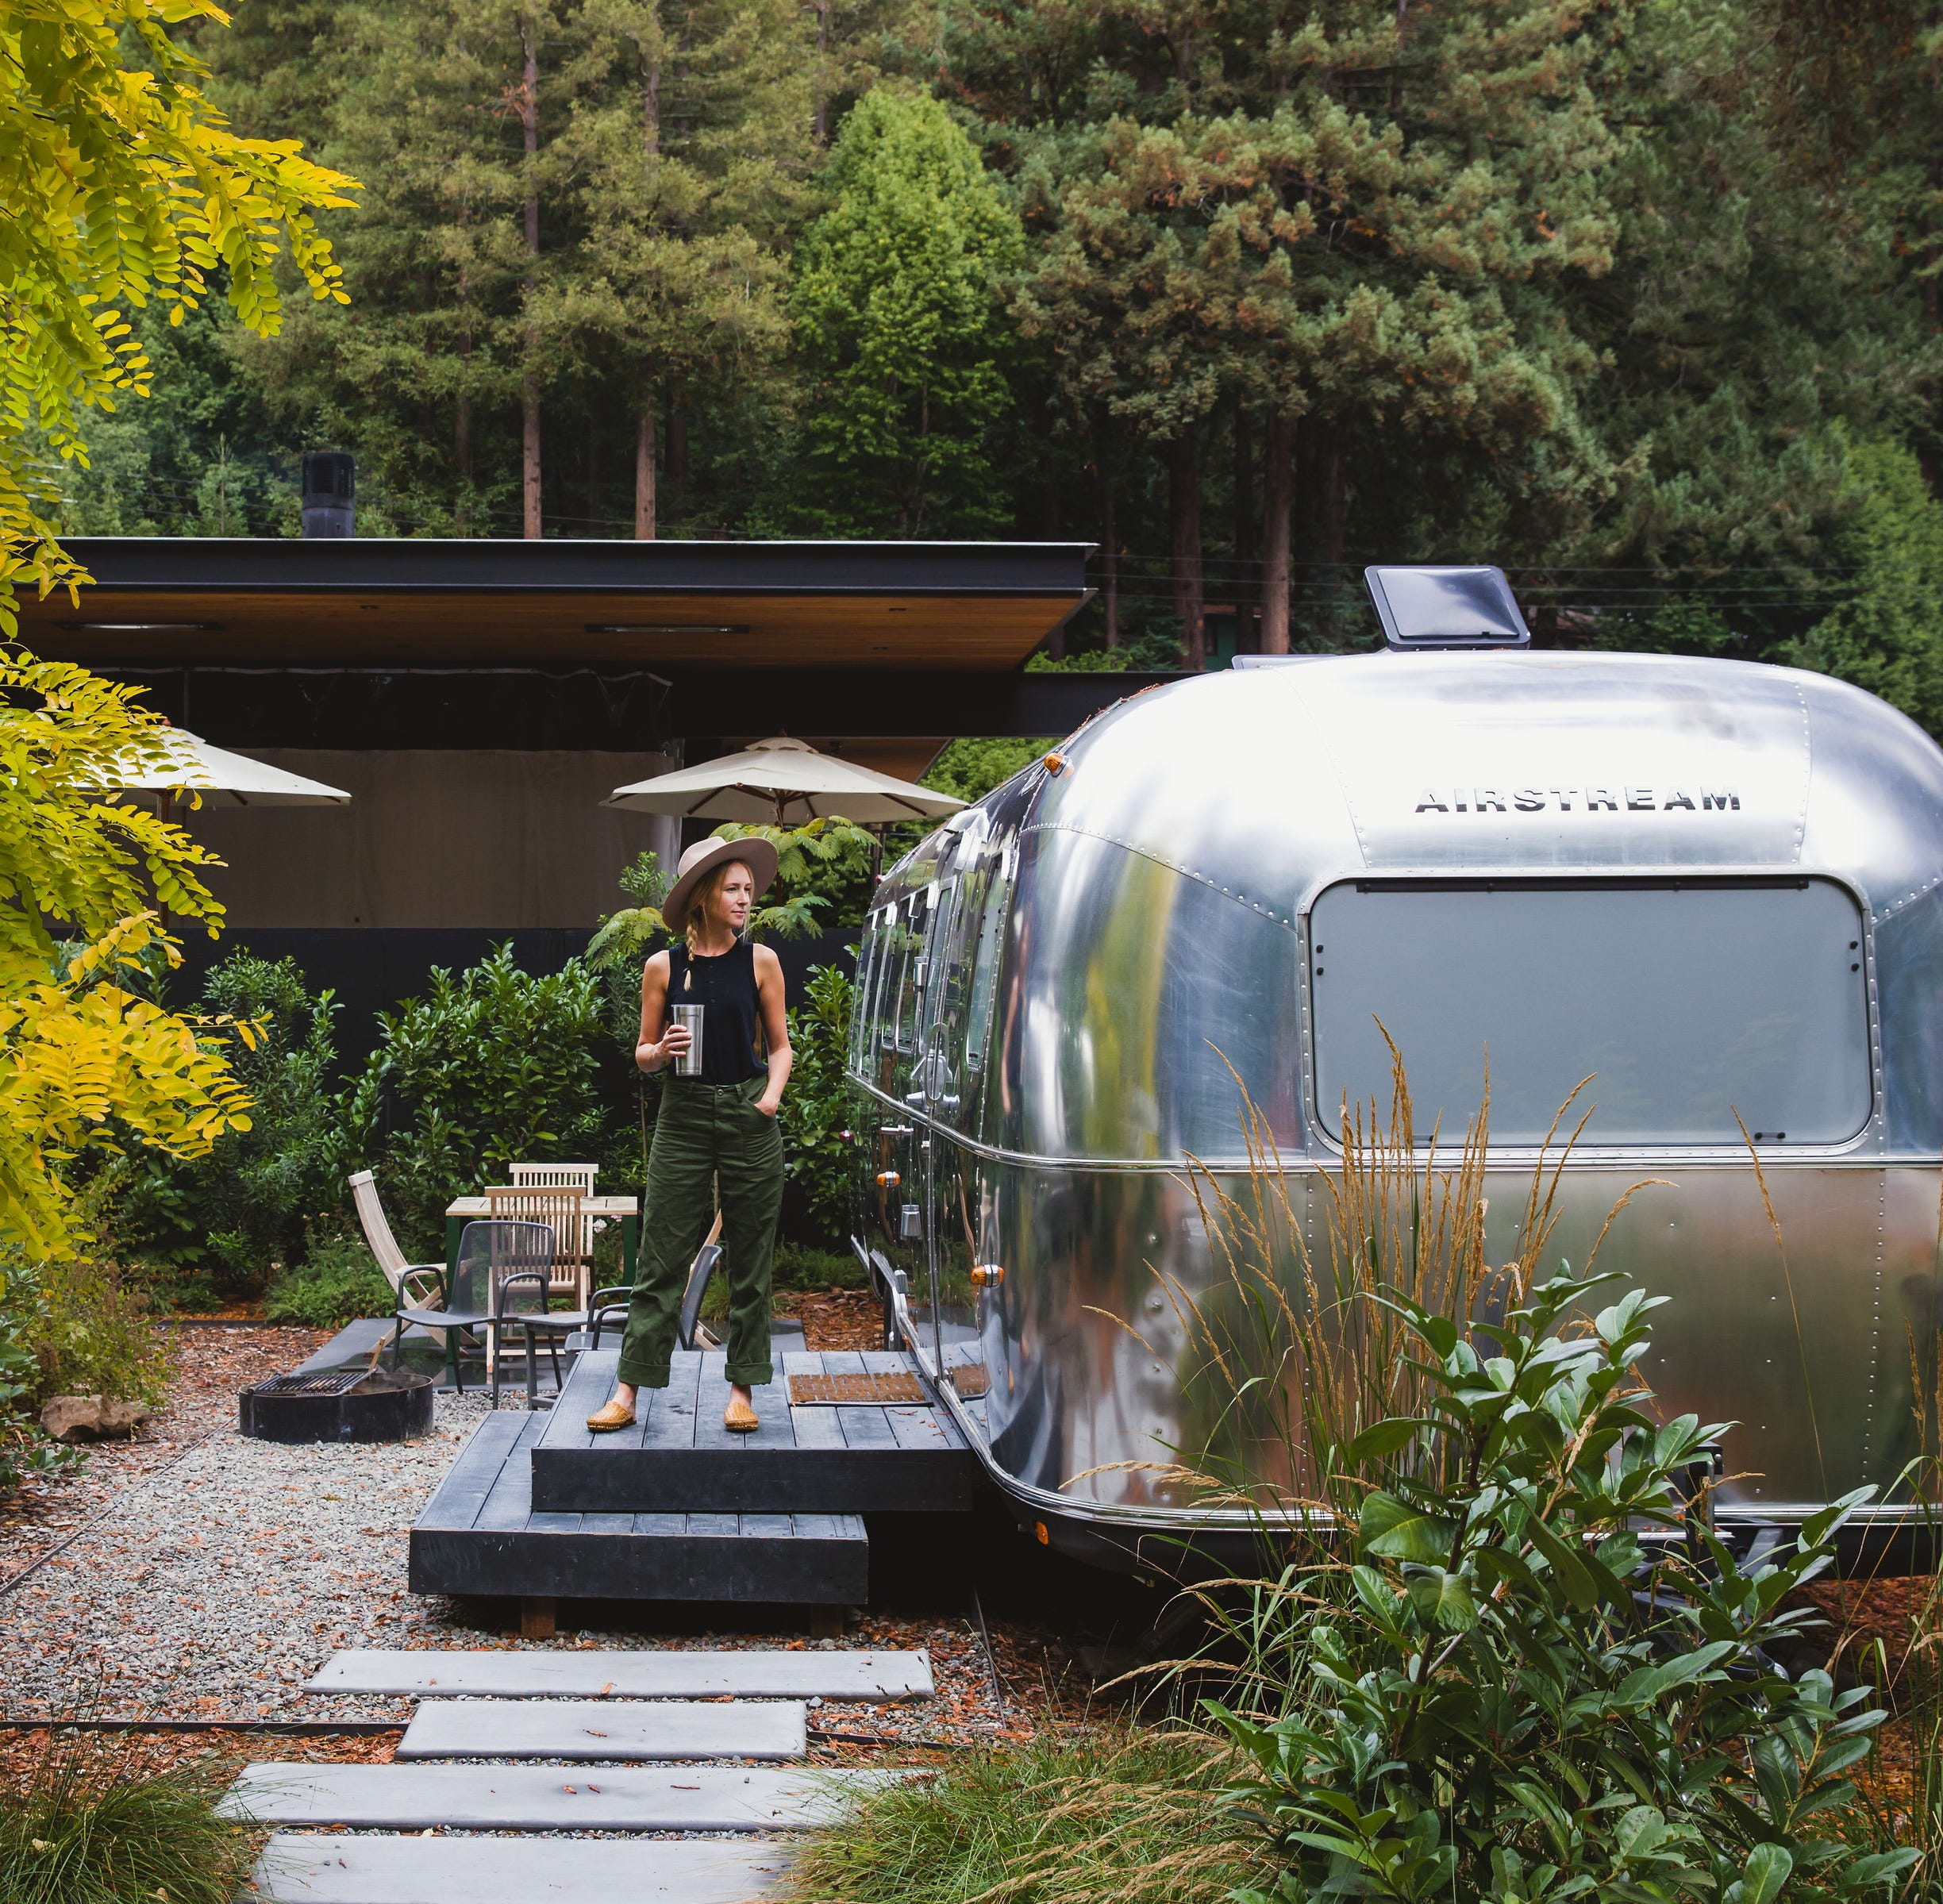 A glamping company wants to build a 55-unit Airstream hotel in Joshua Tree. Locals have thoughts.